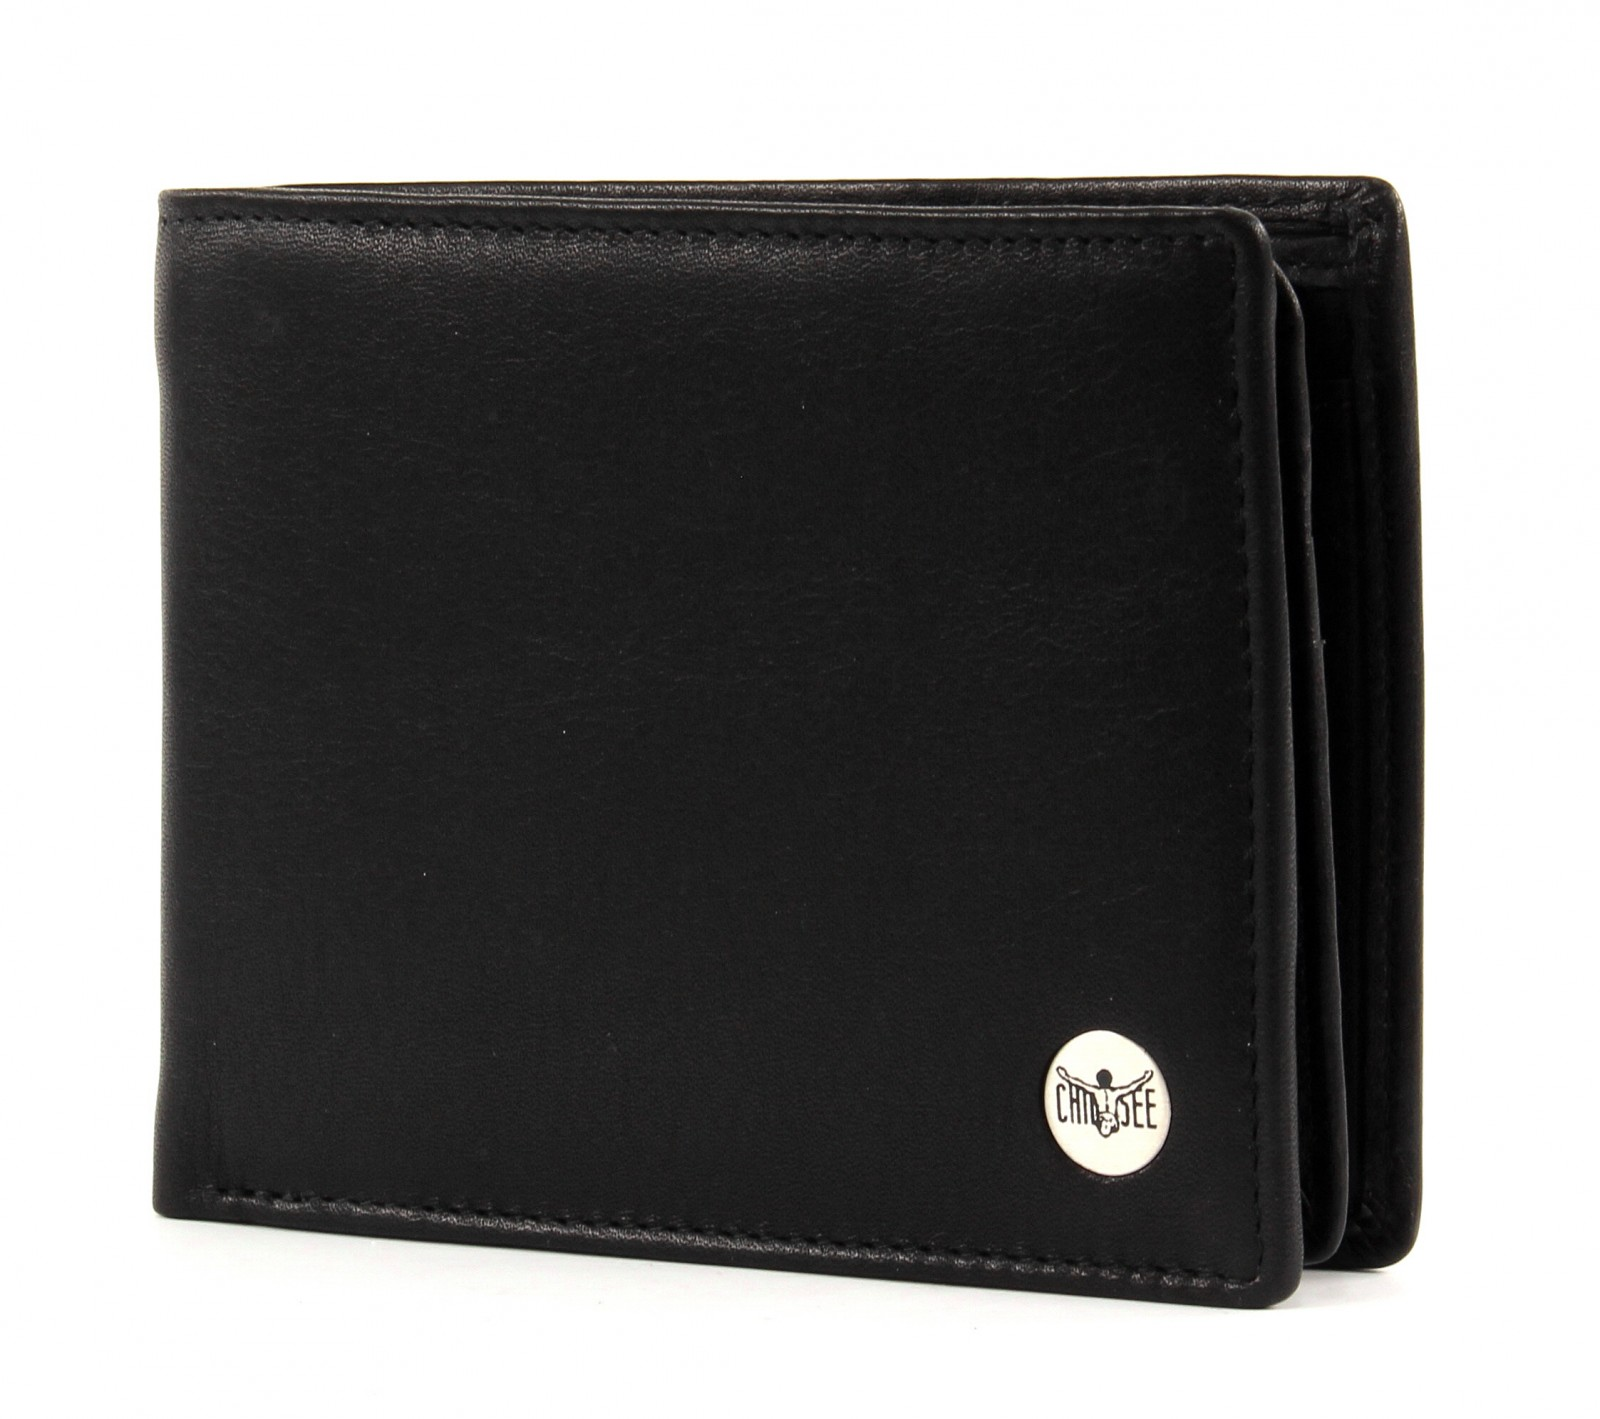 Black breast wallet with cross